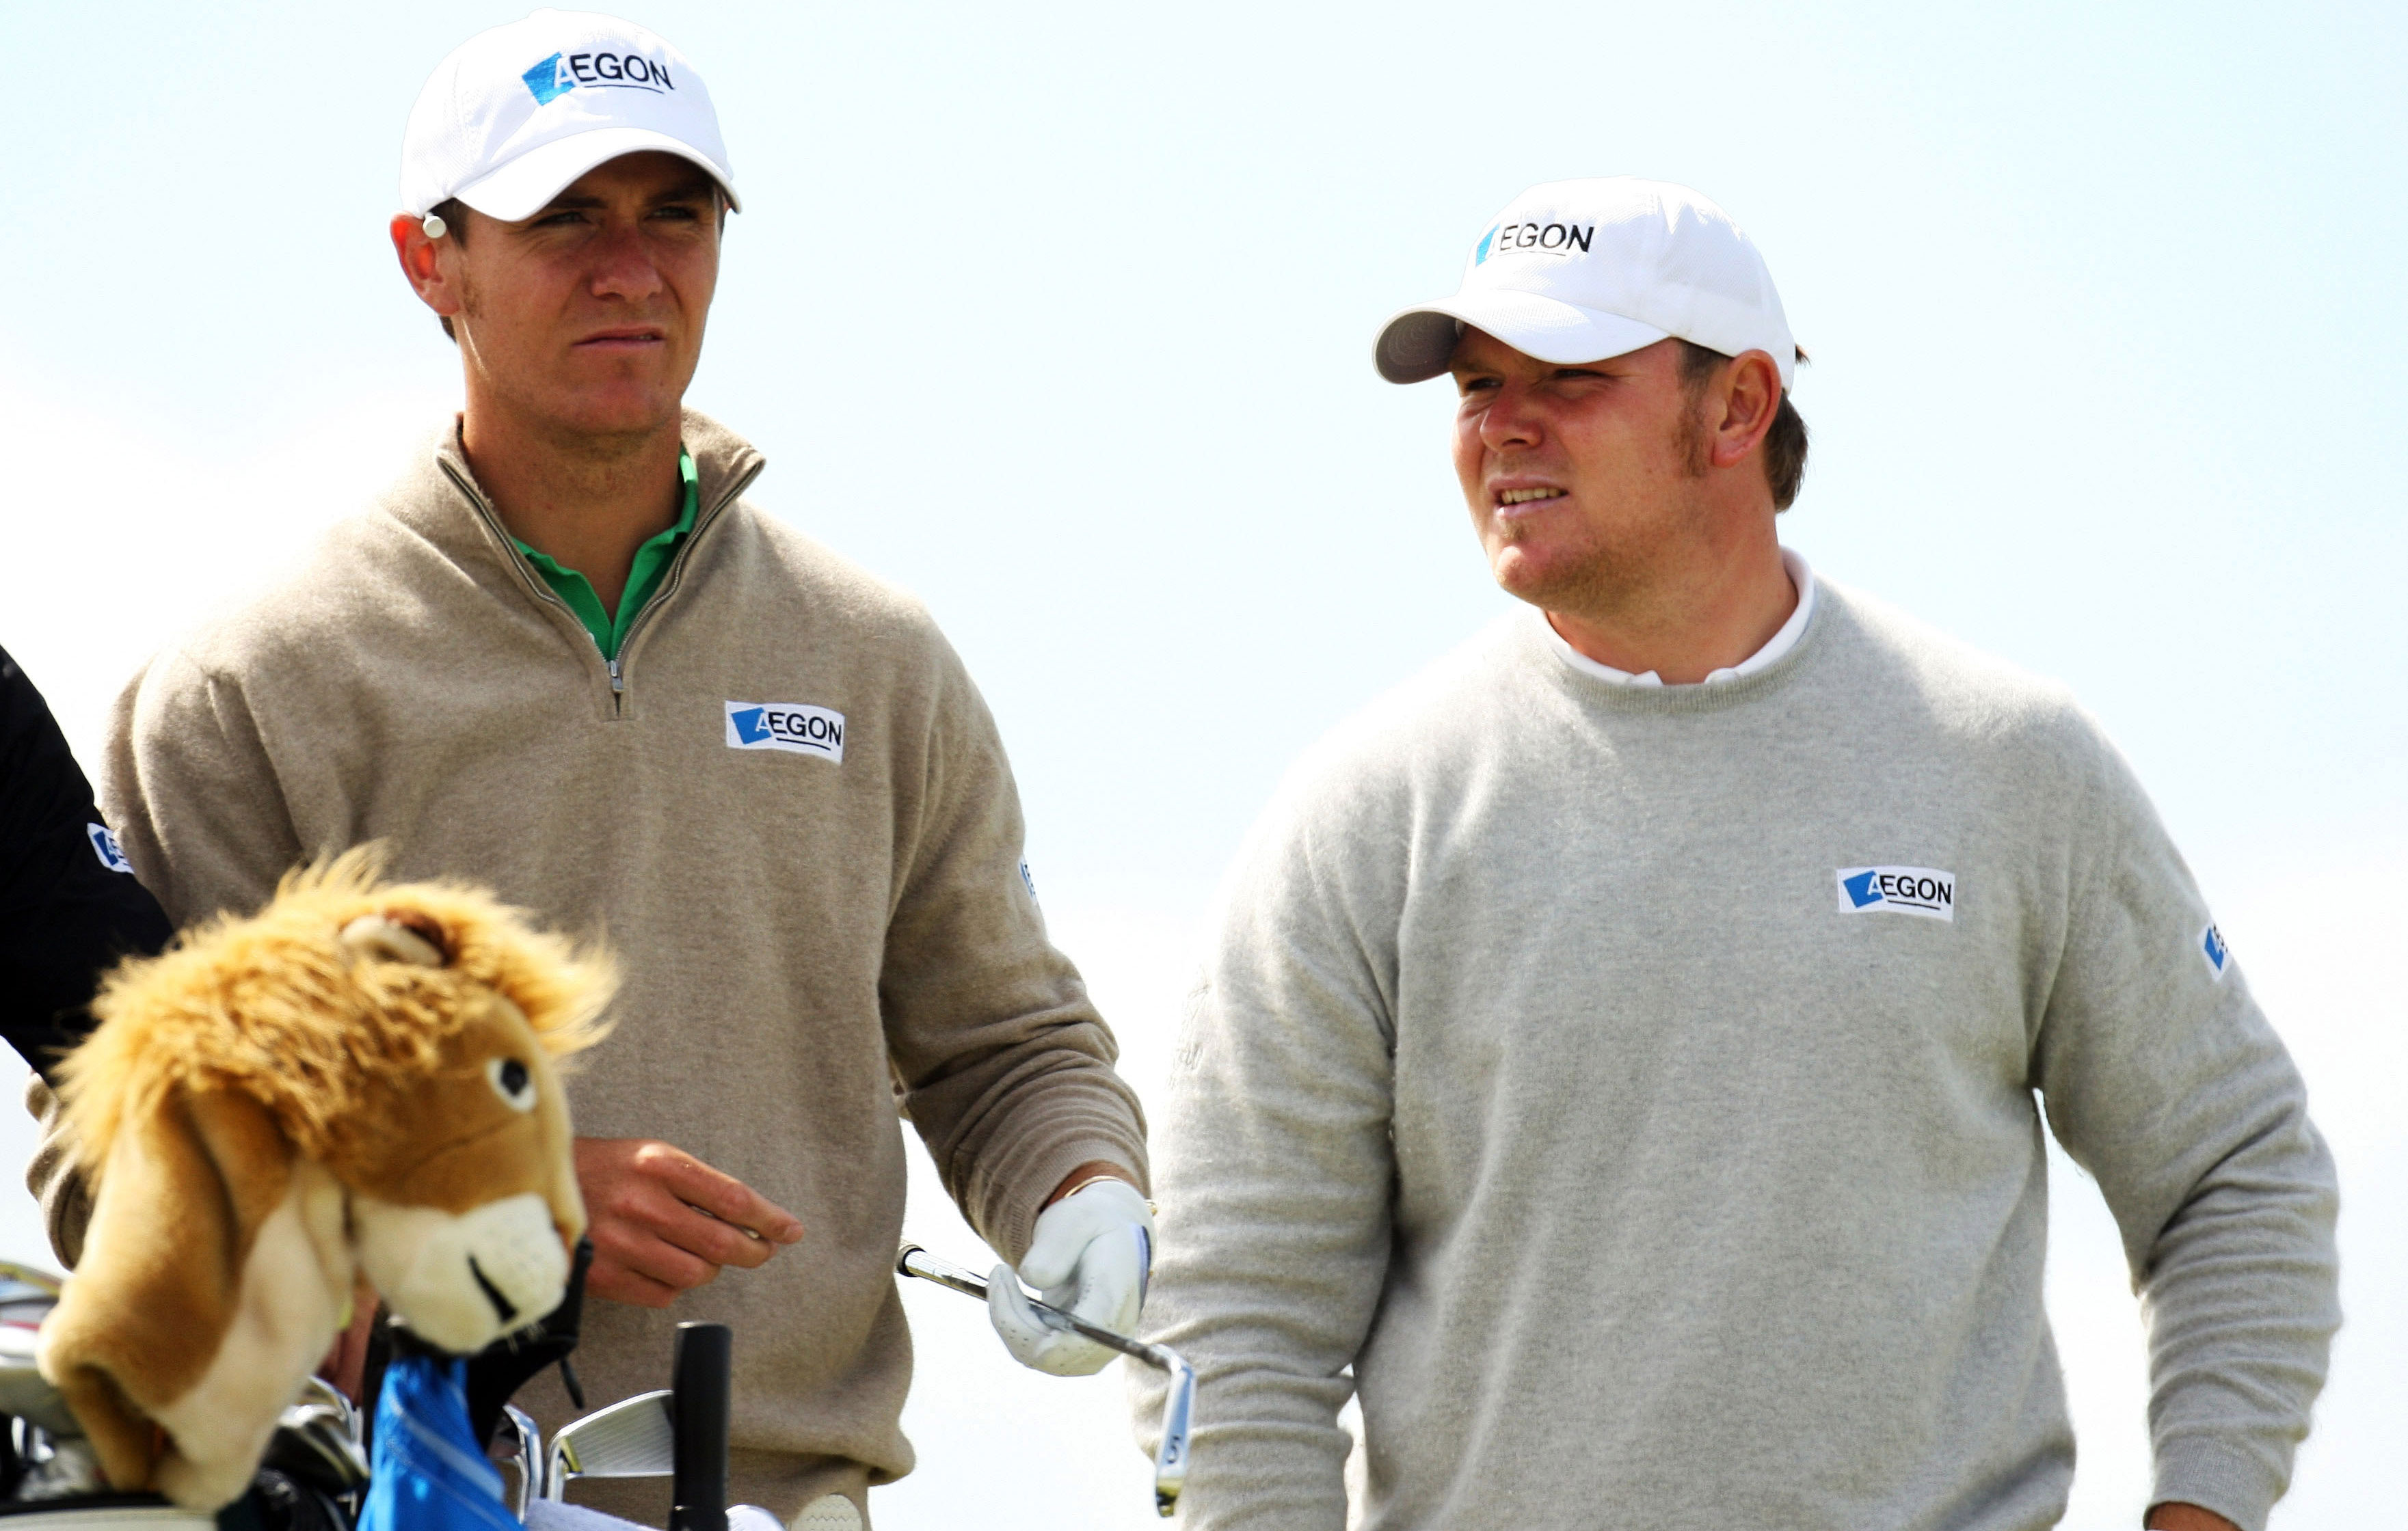 """Scotland's Elliot Saltman (left) had been under a cloud since he was accused of """"cheating"""" on the 2010 Challenge Tour. He got his card at Euro Q-School but might not get full use of it. He was banned for 3 months on Wednesday. Saltman is seen here with his brother, Lloyd."""